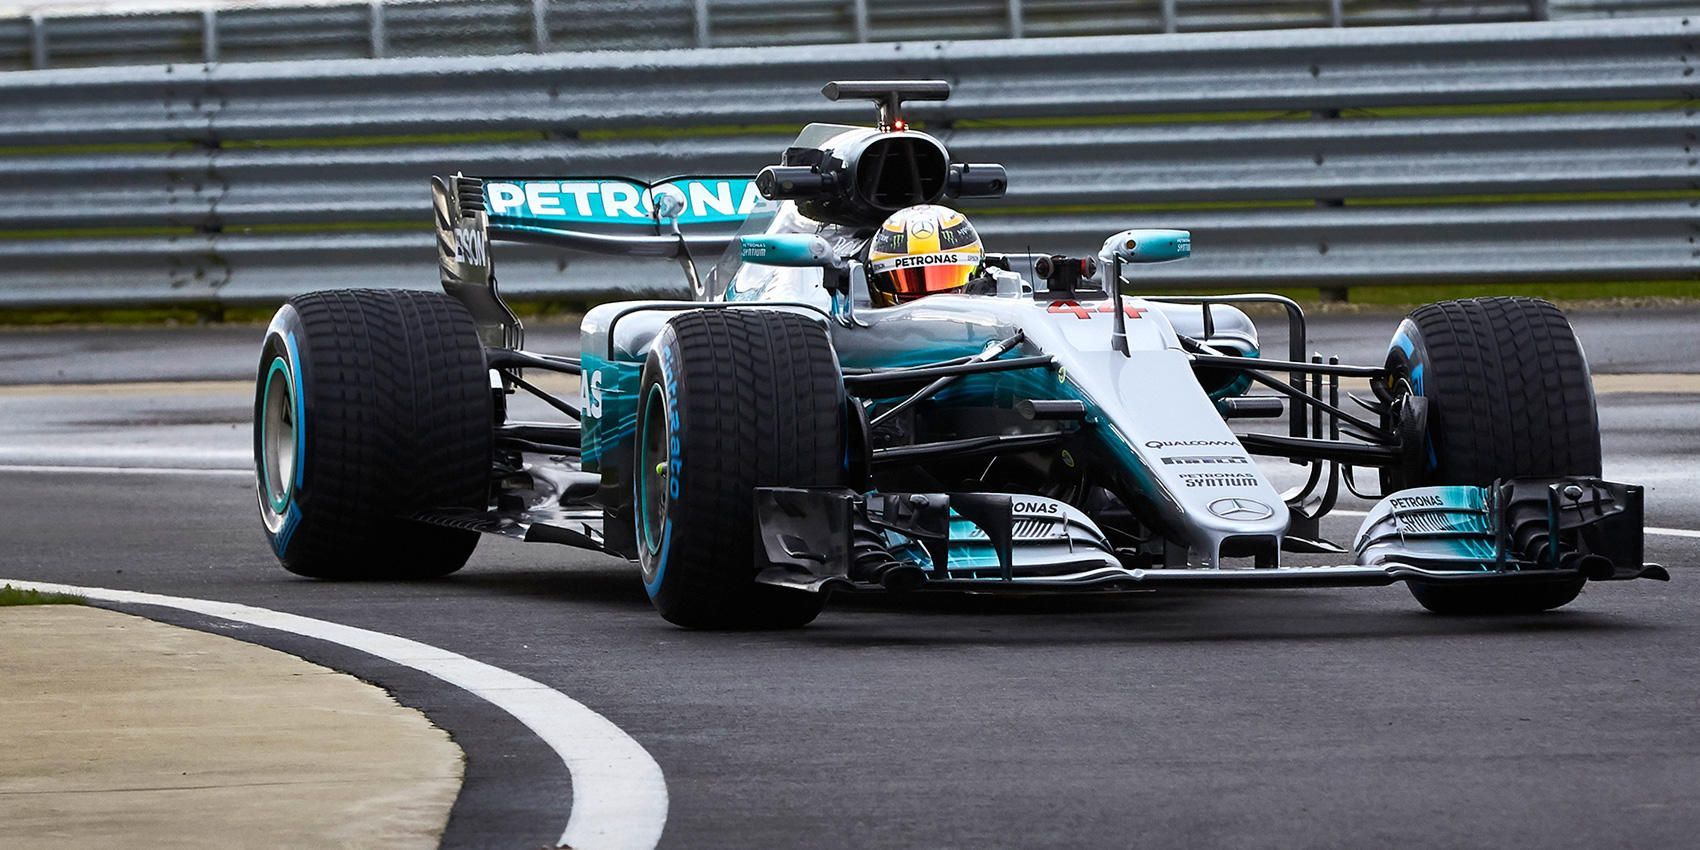 The Mercedes Car Is The Gorgeous Racer With The Dumb Name